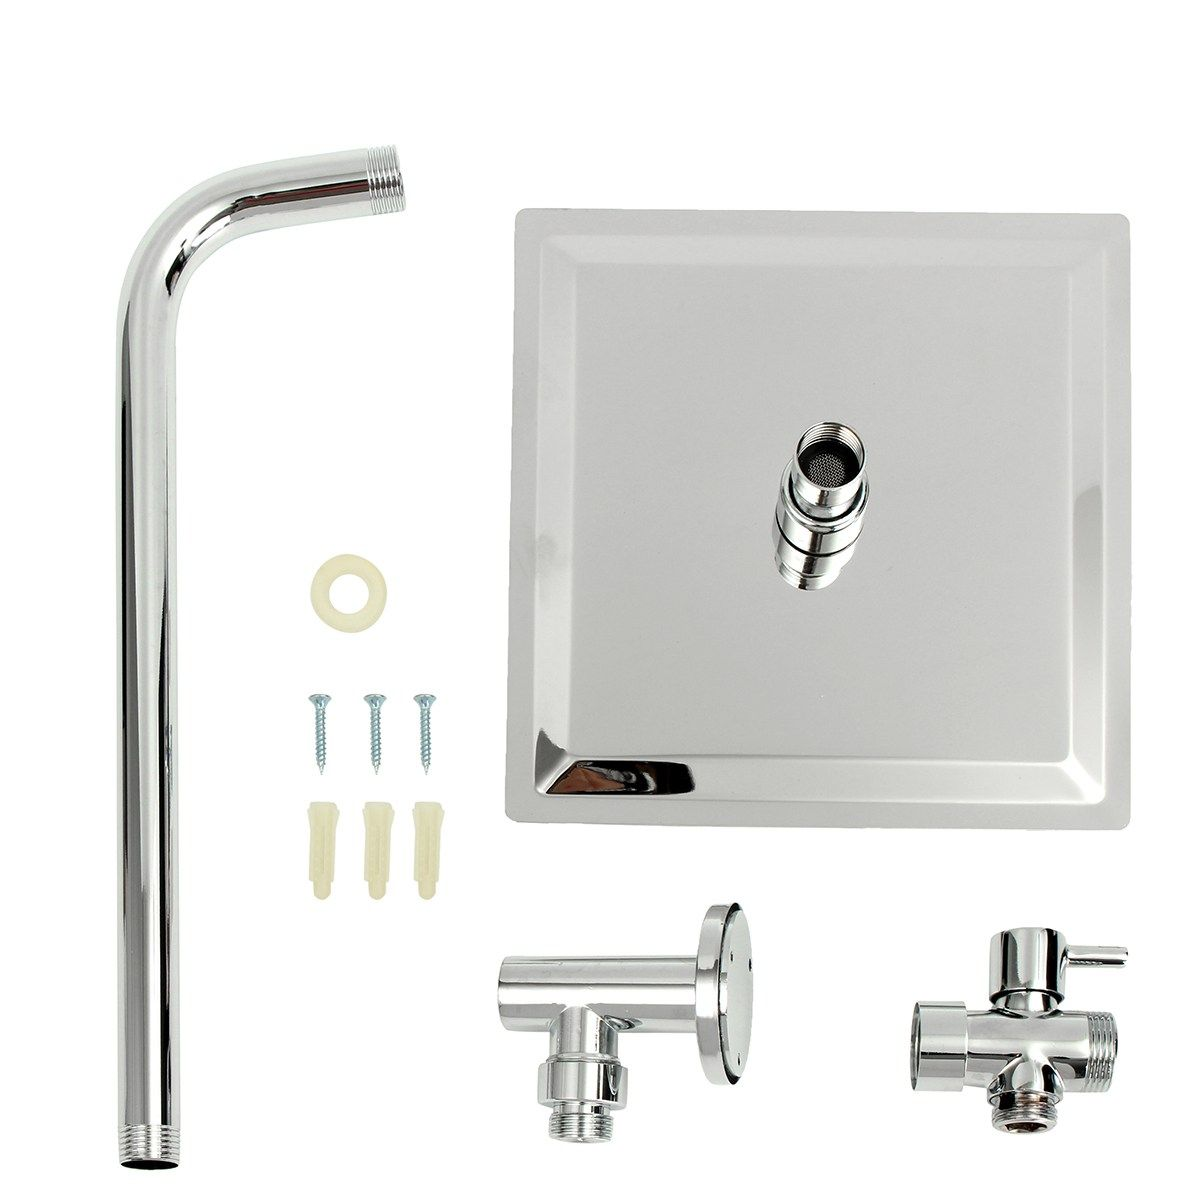 G1 2 Square Chrome Bathroom Ultrathin 8 Inch Shower Head Stainless Steel Shower Arm 3 Ways T Adapter Fauc Shower Diverter Shower Heads Shower Head Extension